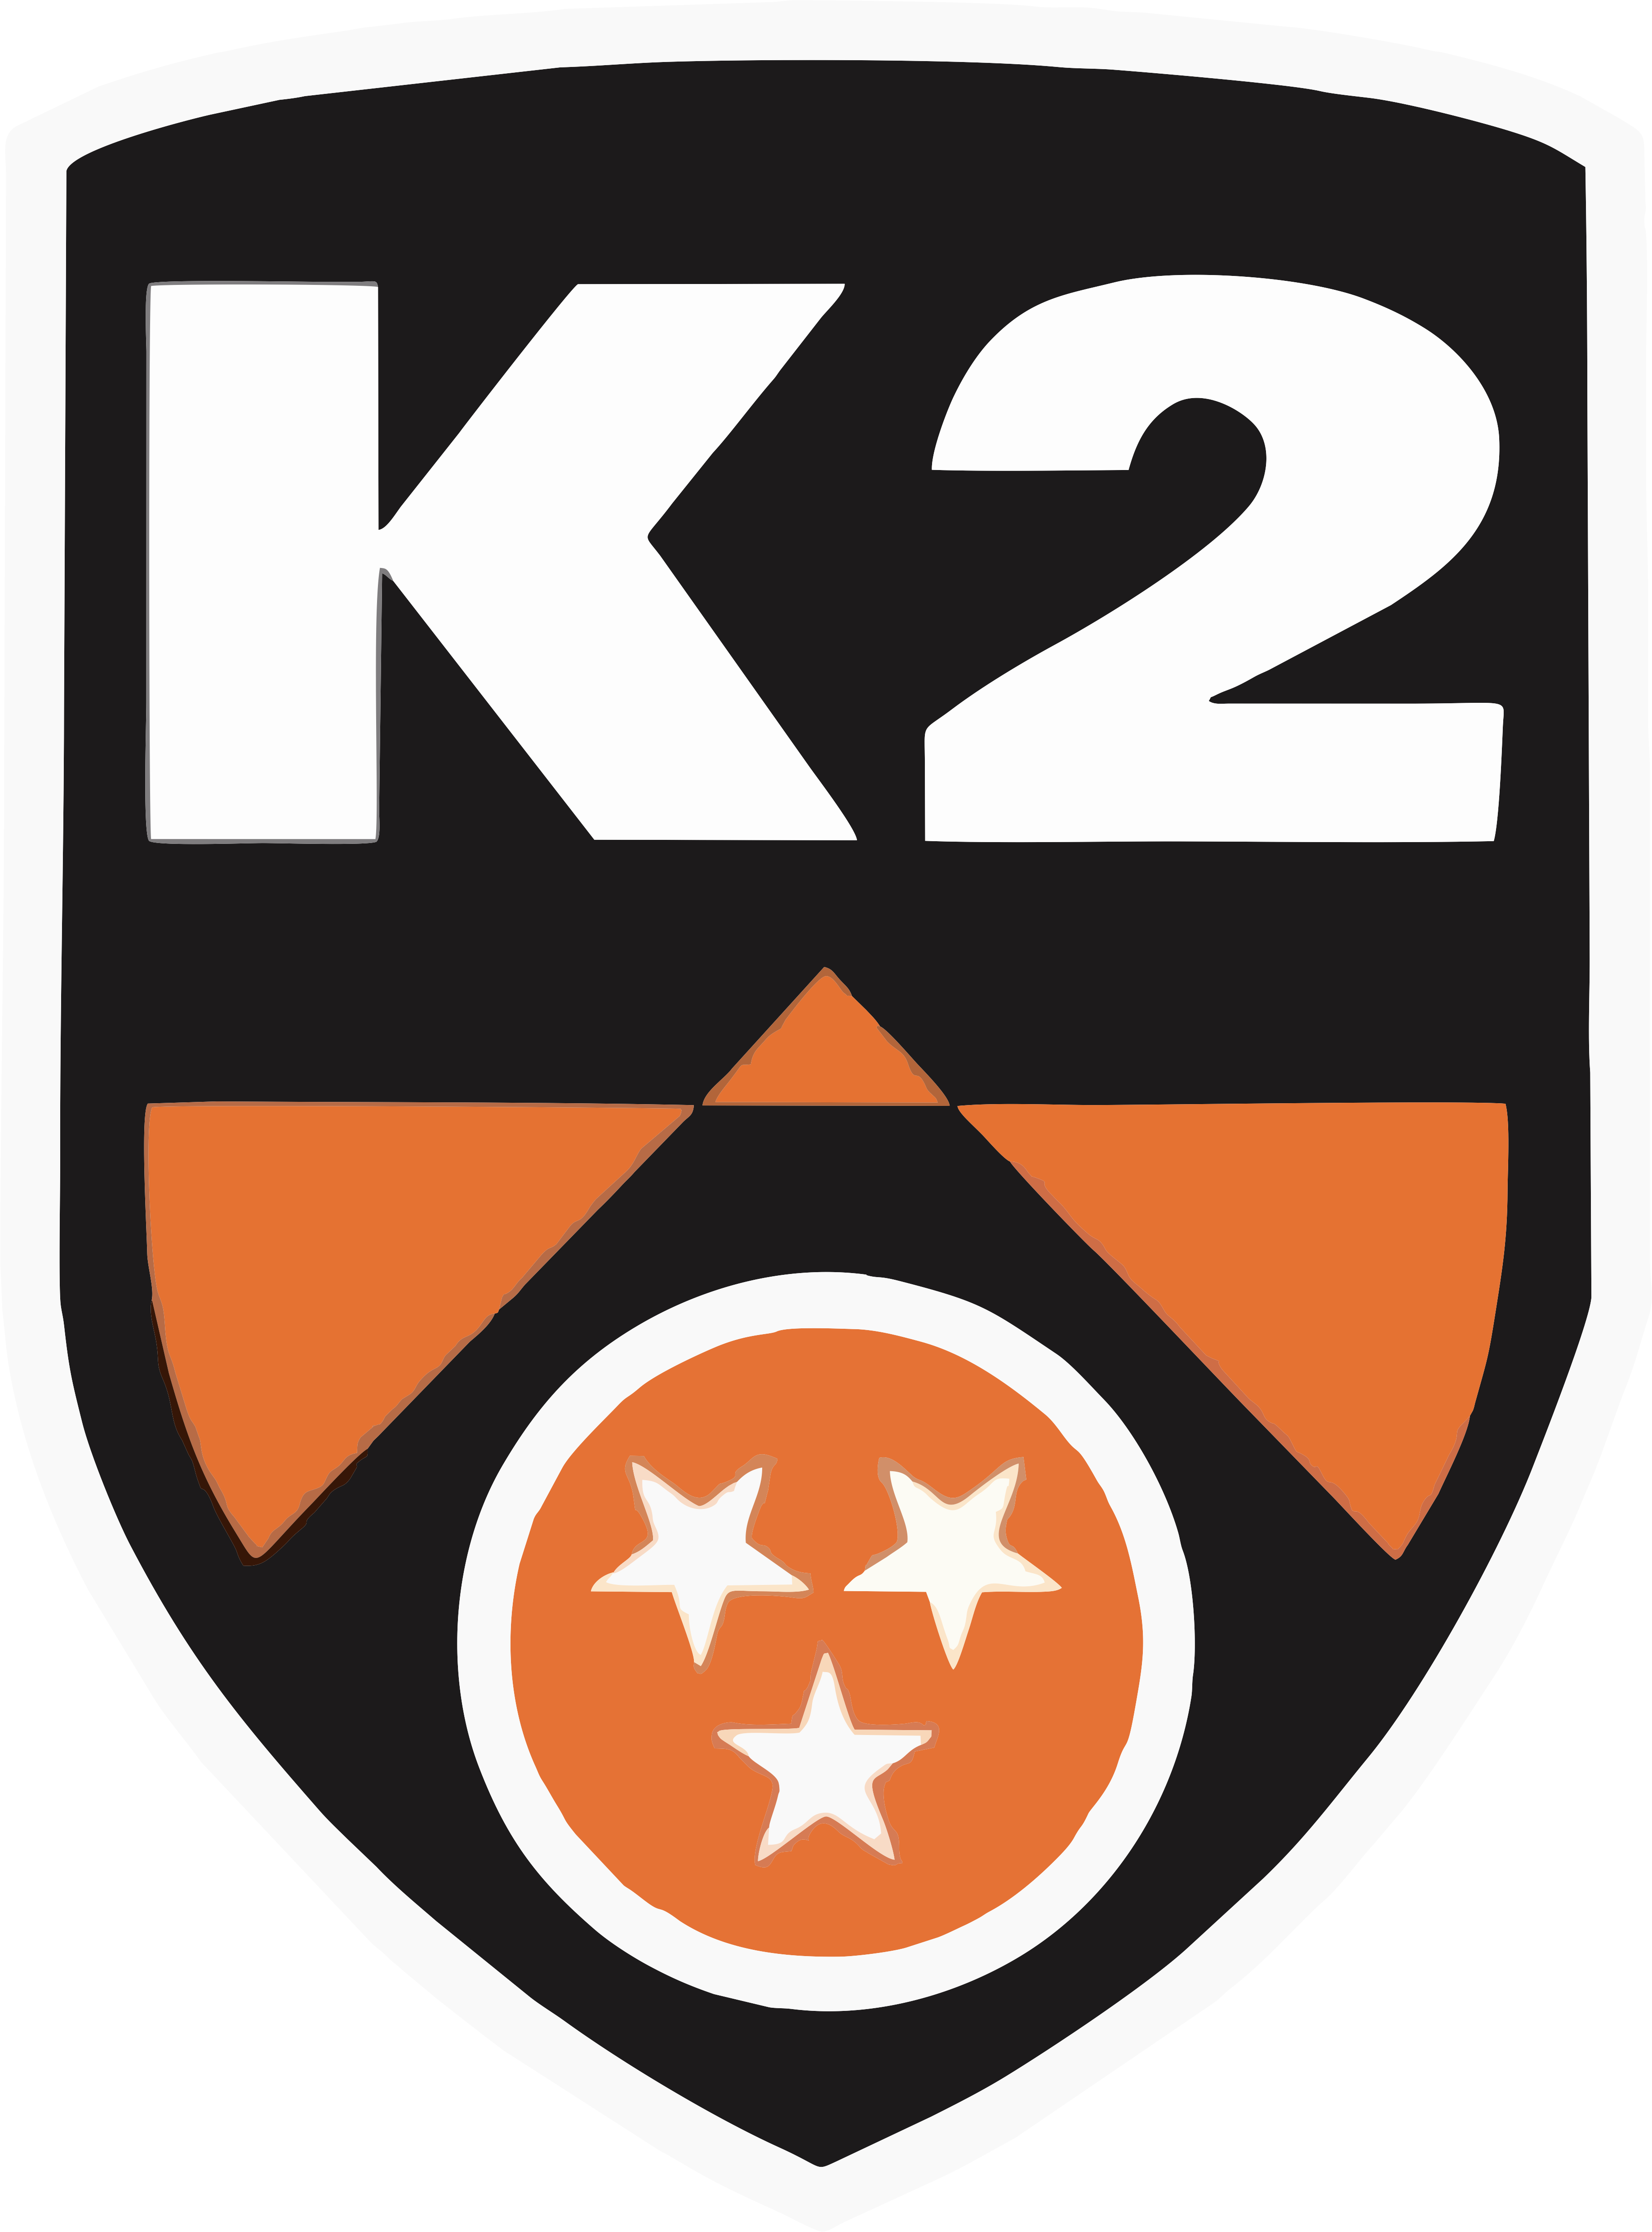 K2 Volleyball Club